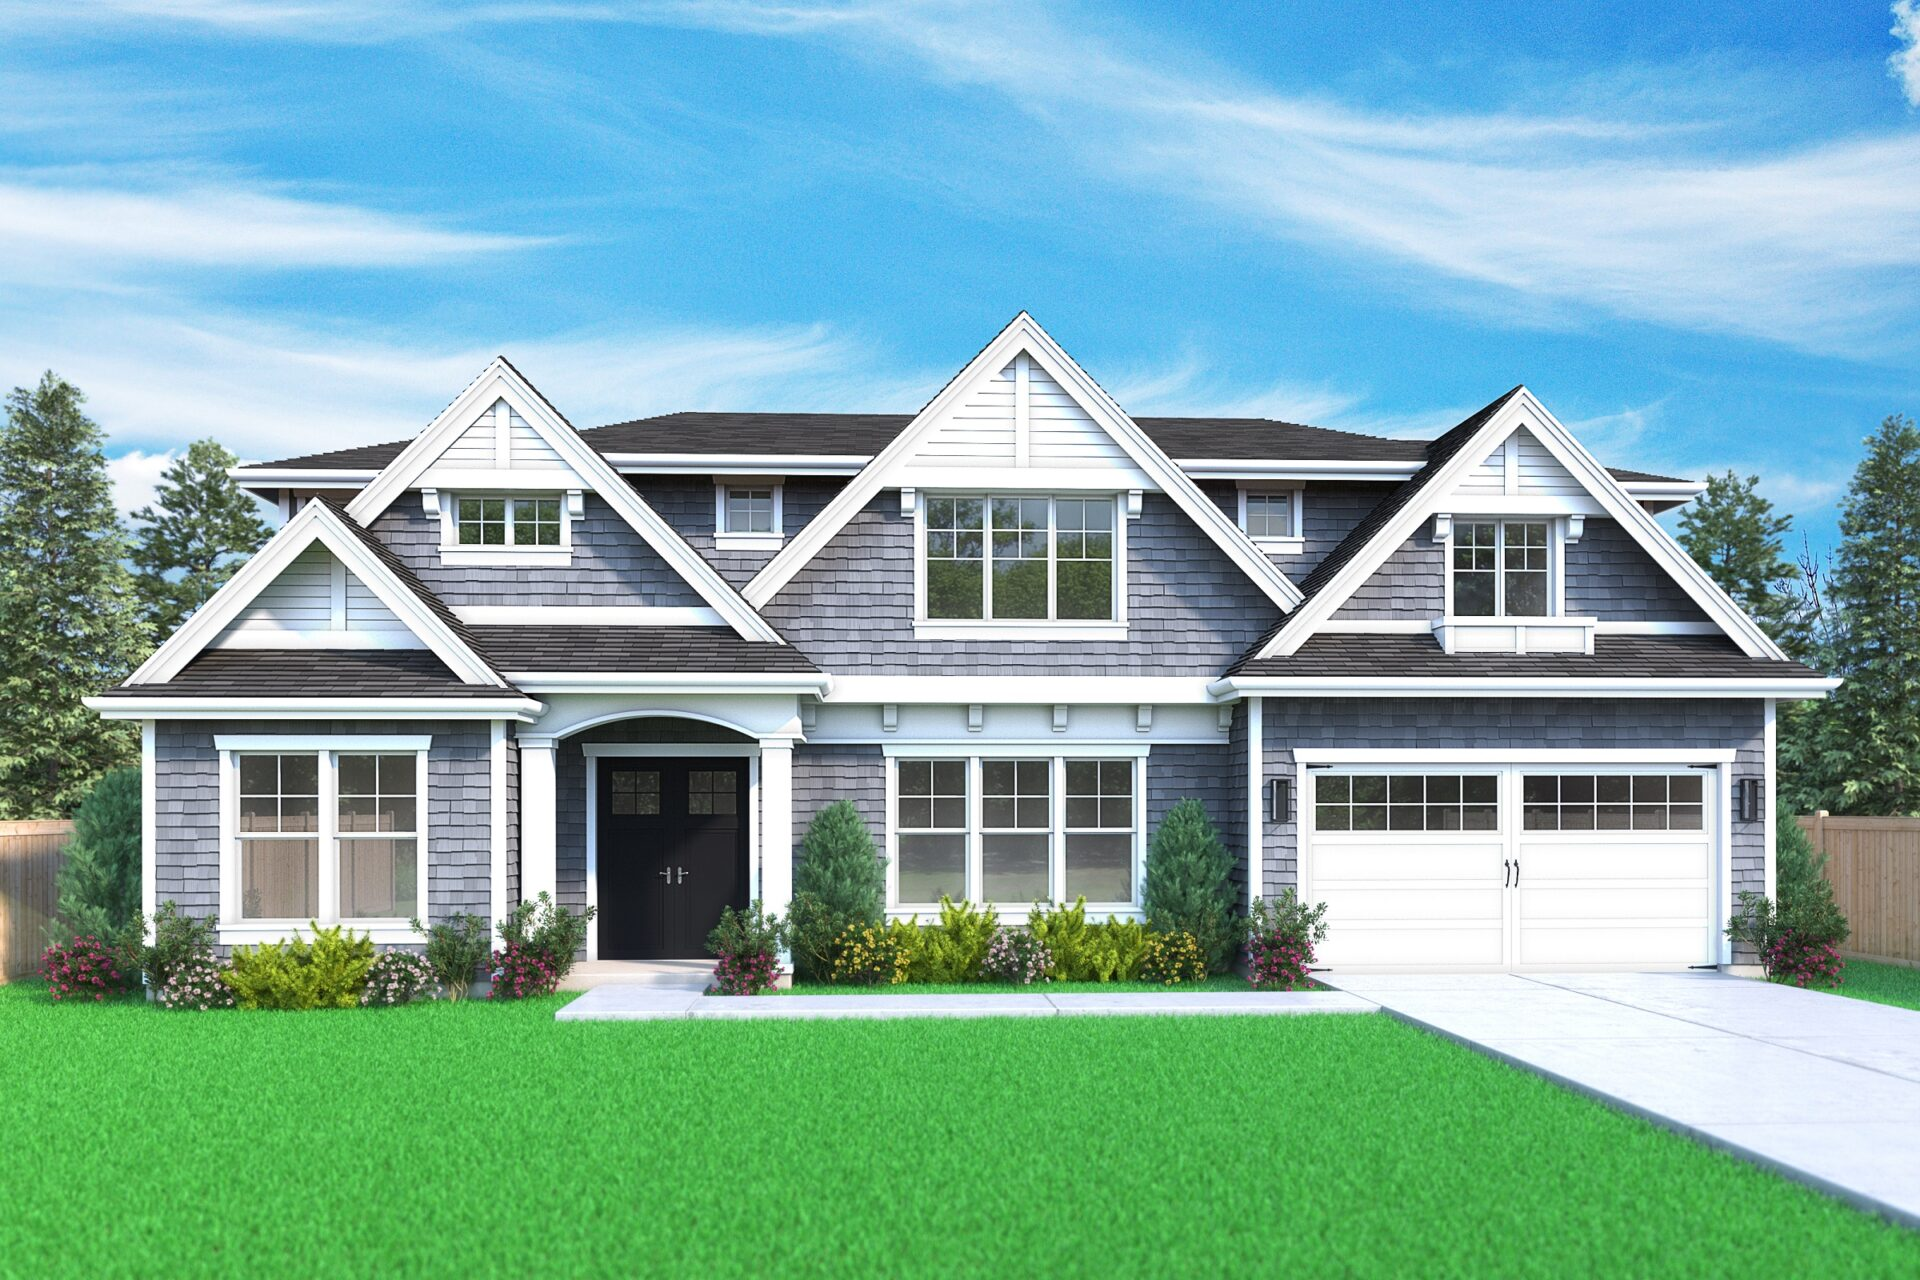 View our new luxury home construction on 7818 123rd Ave, in Kirkland, WA from MN Custom Homes